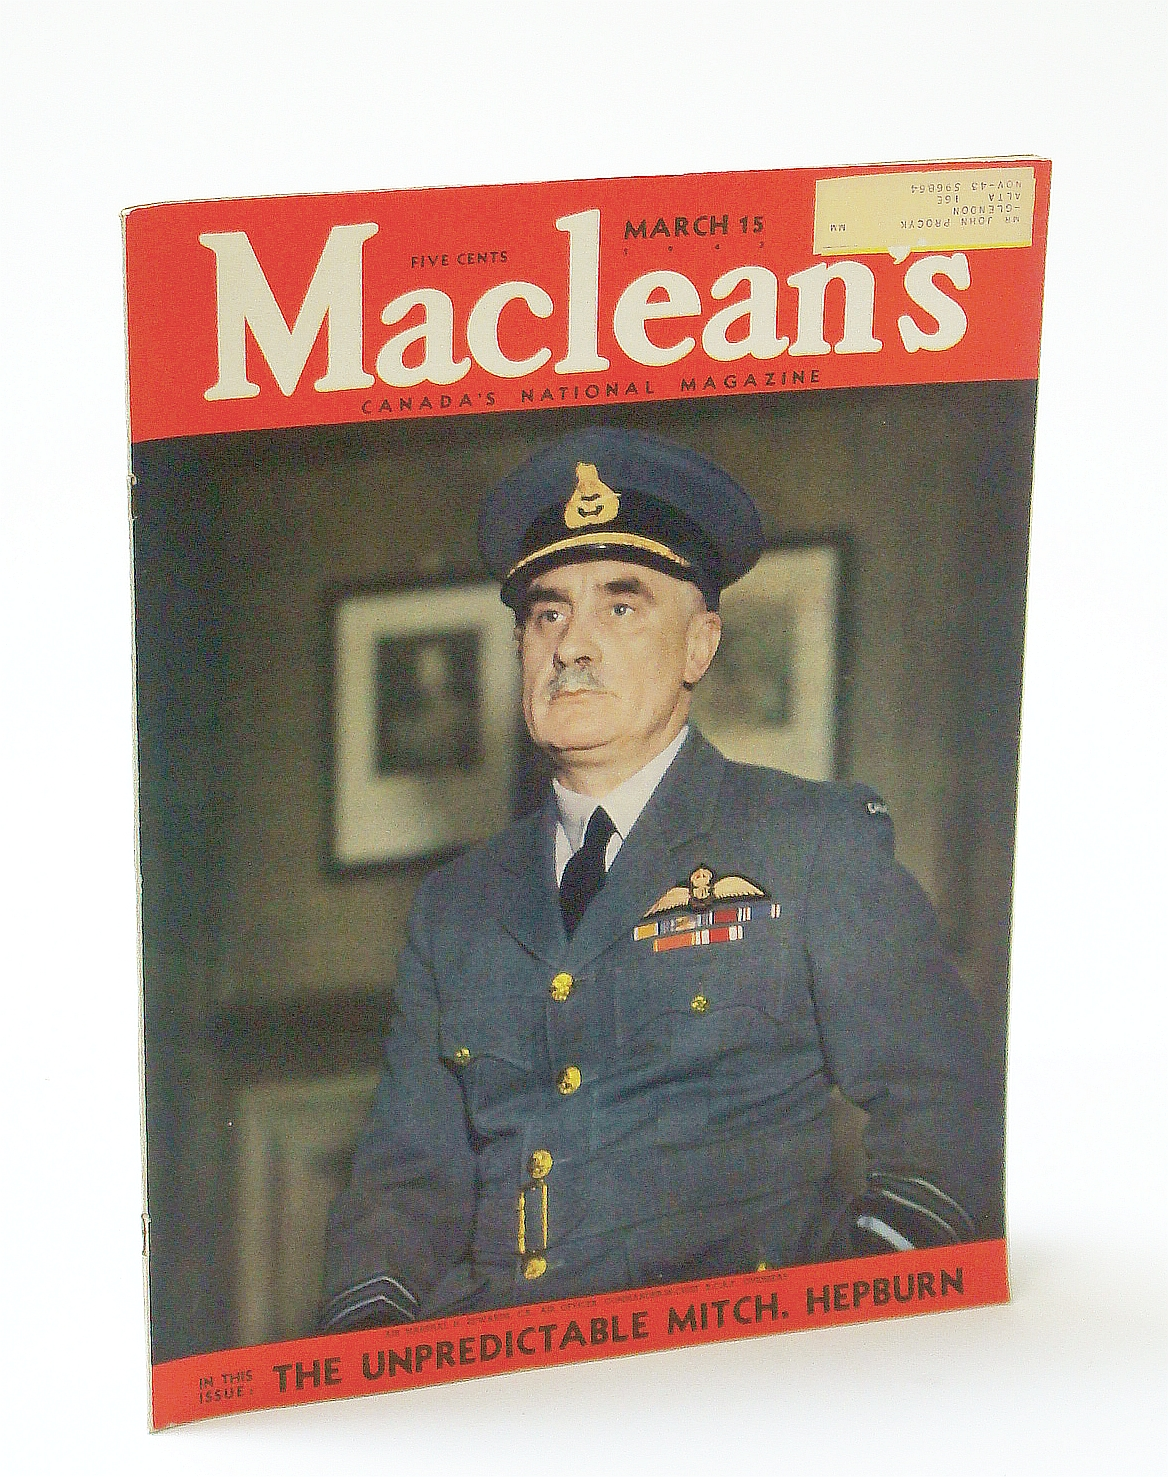 Image for Maclean's, Canada's National Magazine, March (Mar.) 15, 1943, Vol. 56, No. 6 - Cover Photo of Air Marshal H. Edwards, C.B., Commander-In-Chief R.C.A.F. Overseas / Shipshaw Power Development